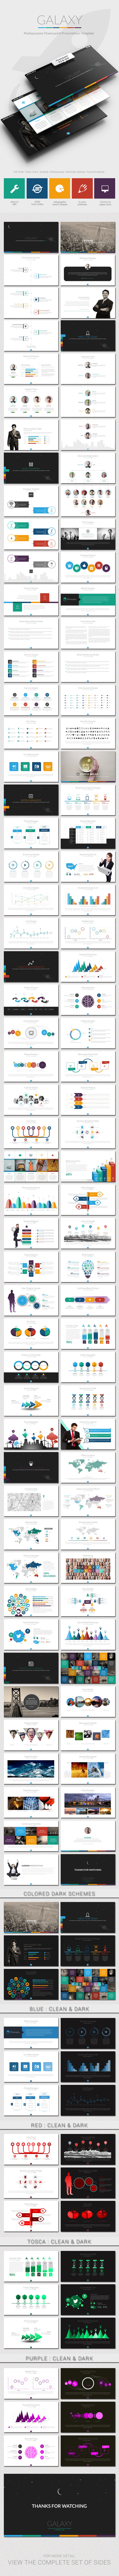 powerpoint template powerpoint powerpointtemplate download http